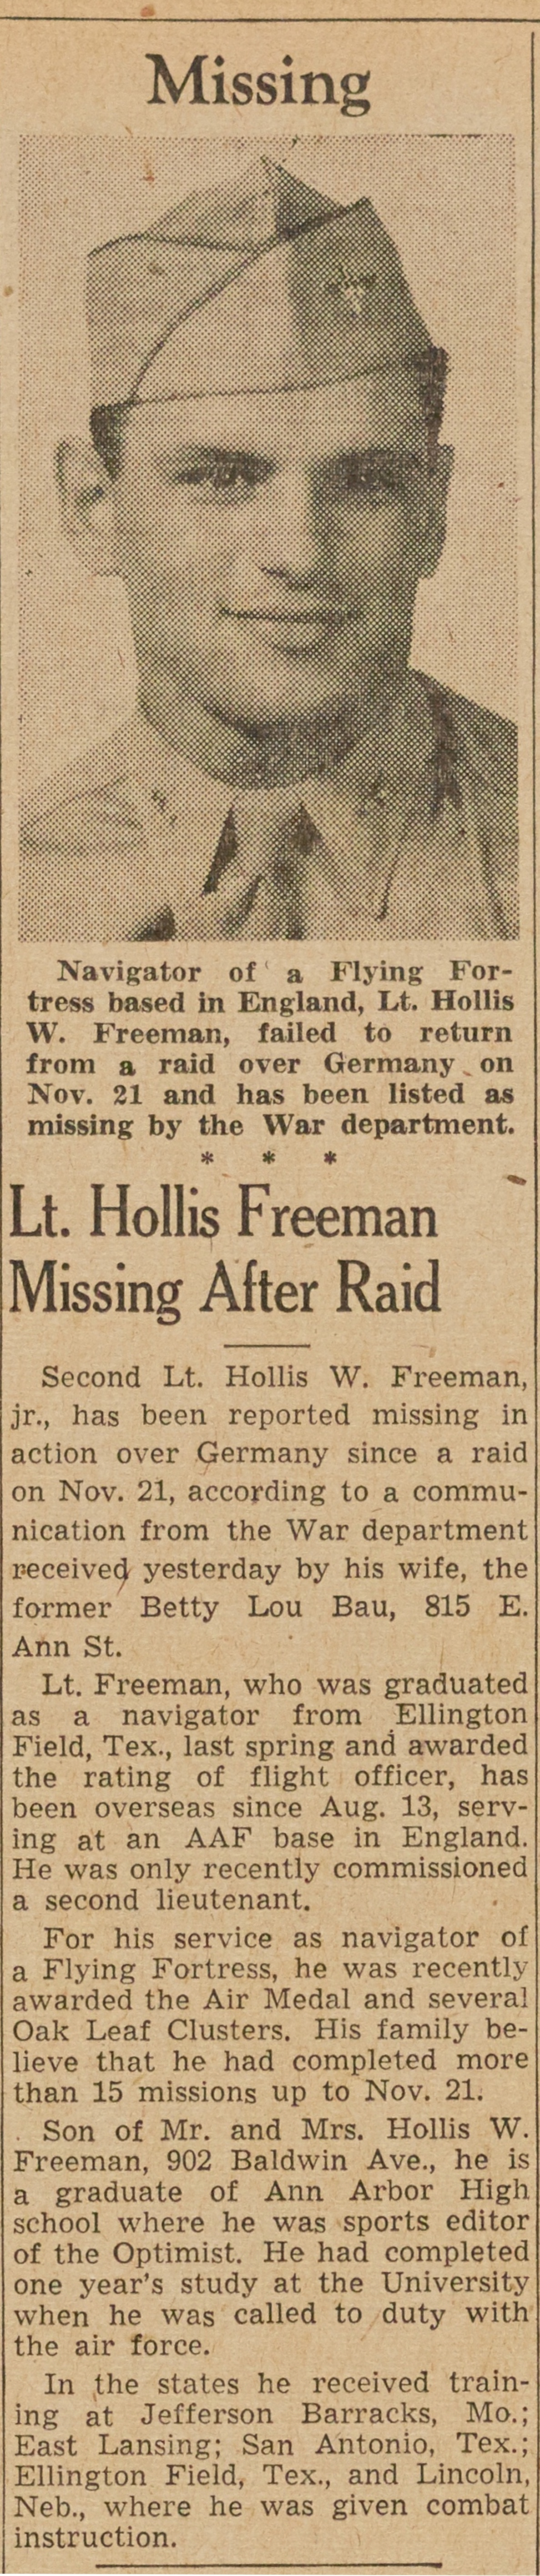 Lt. Hollis Freeman Missing After Raid image